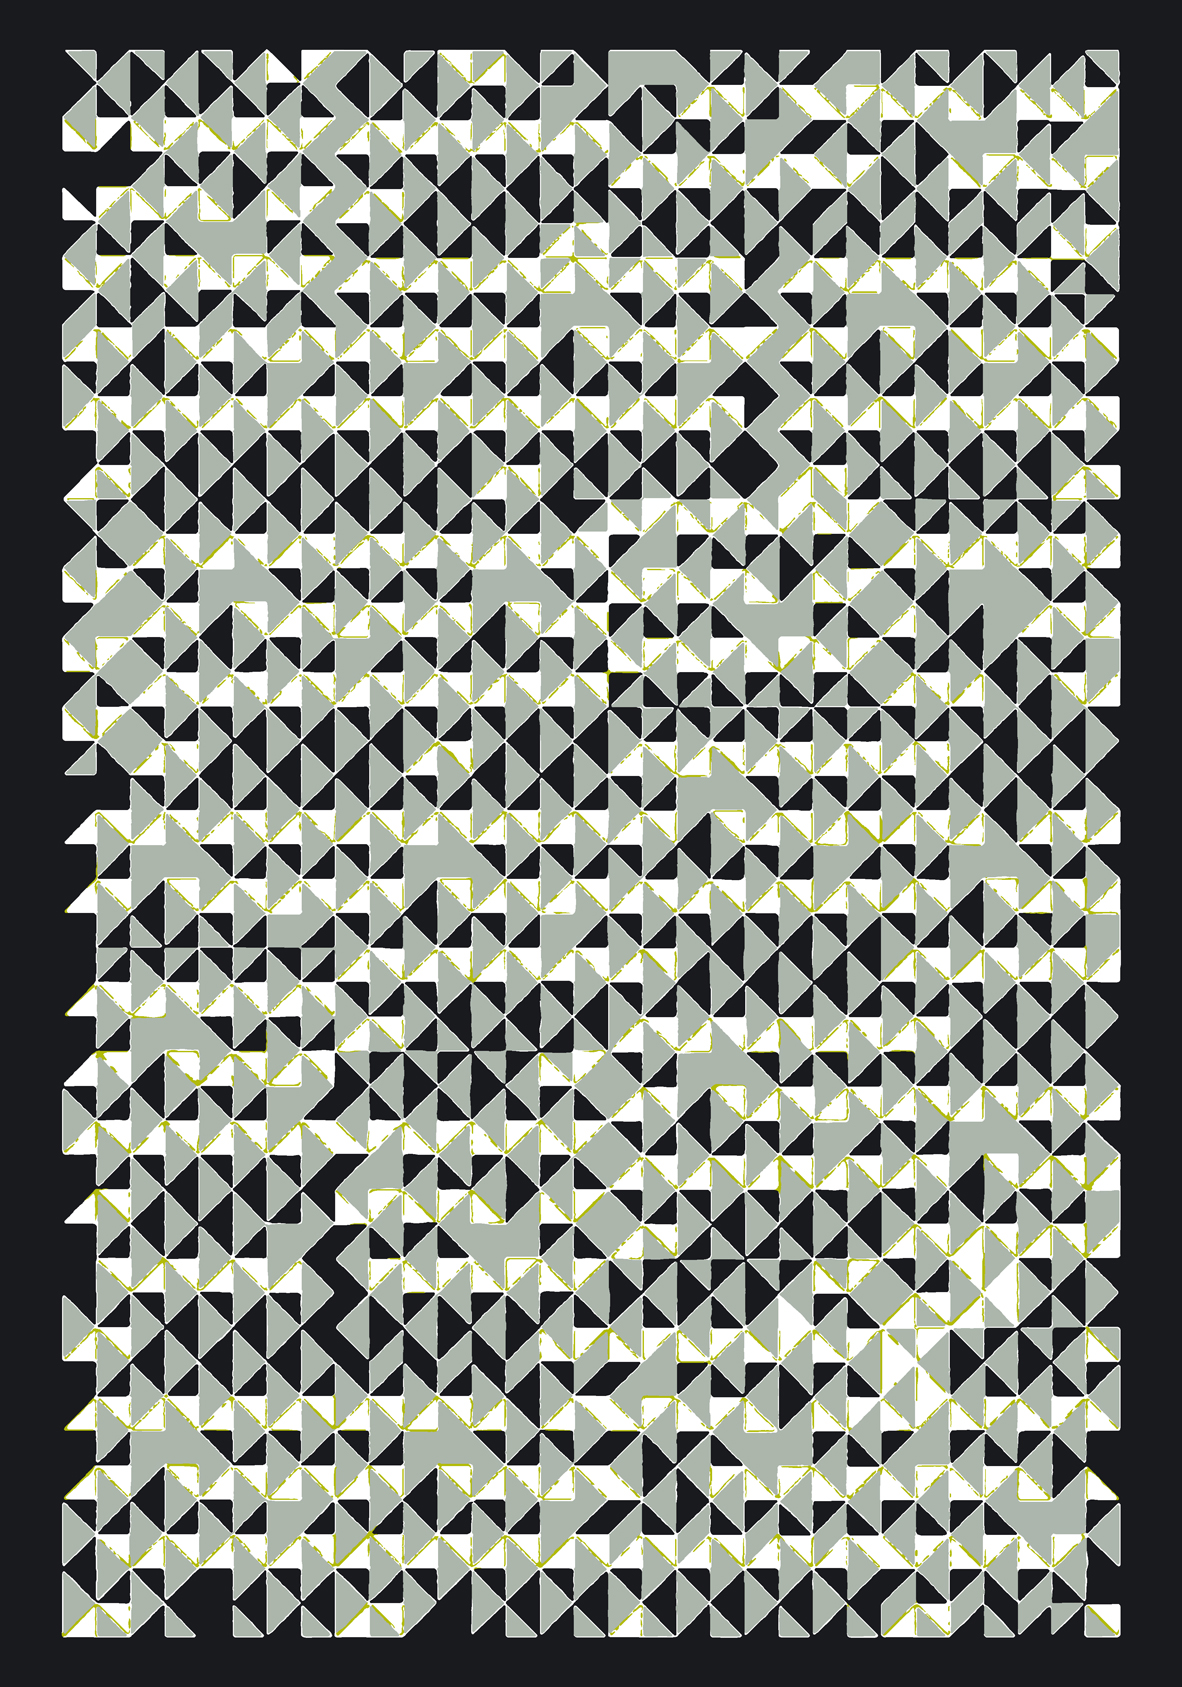 Small Goodweave Rug.jpg